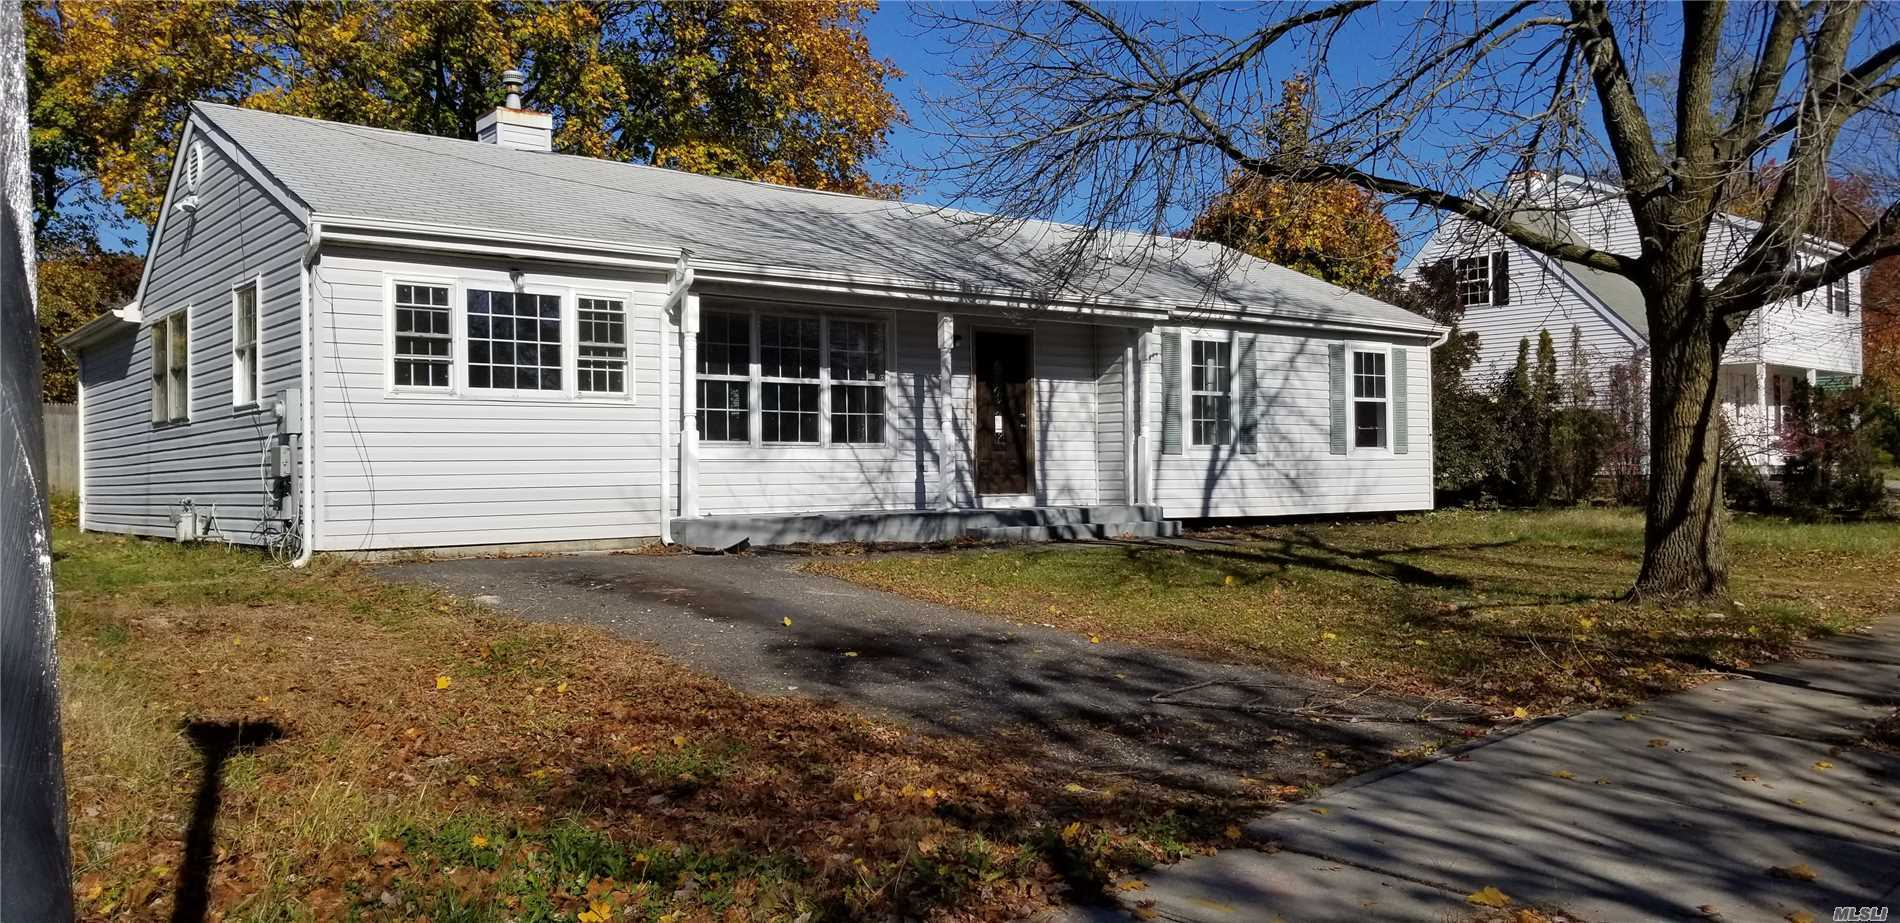 Photo of home for sale at 45 Smith St, Central Islip NY